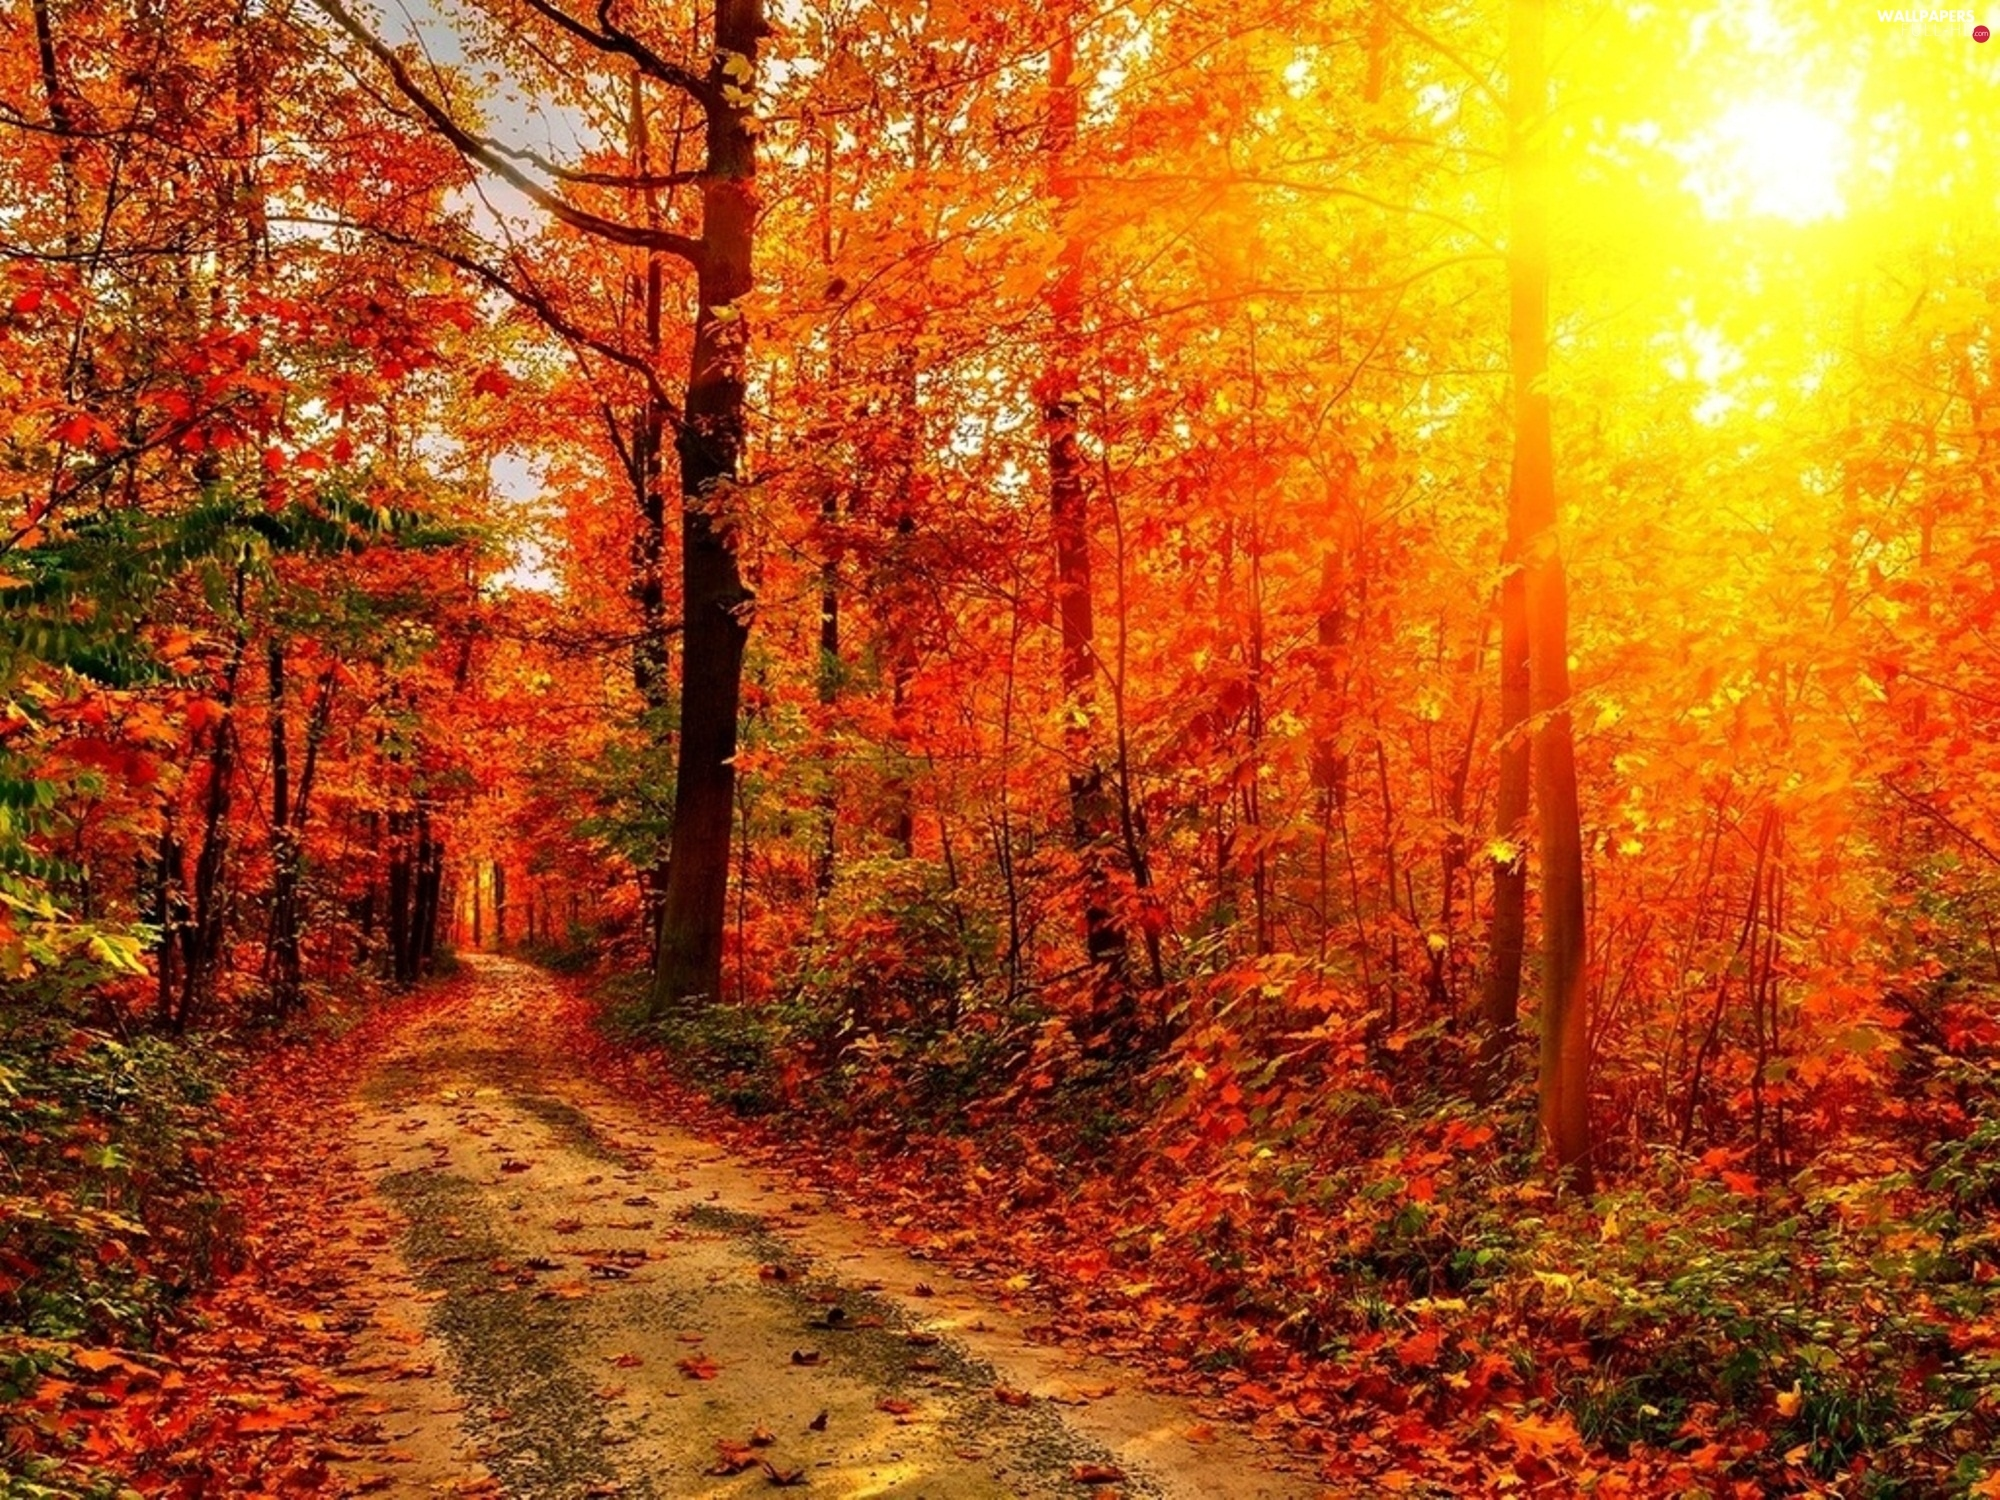 sun, rays, forest, autumn, Way